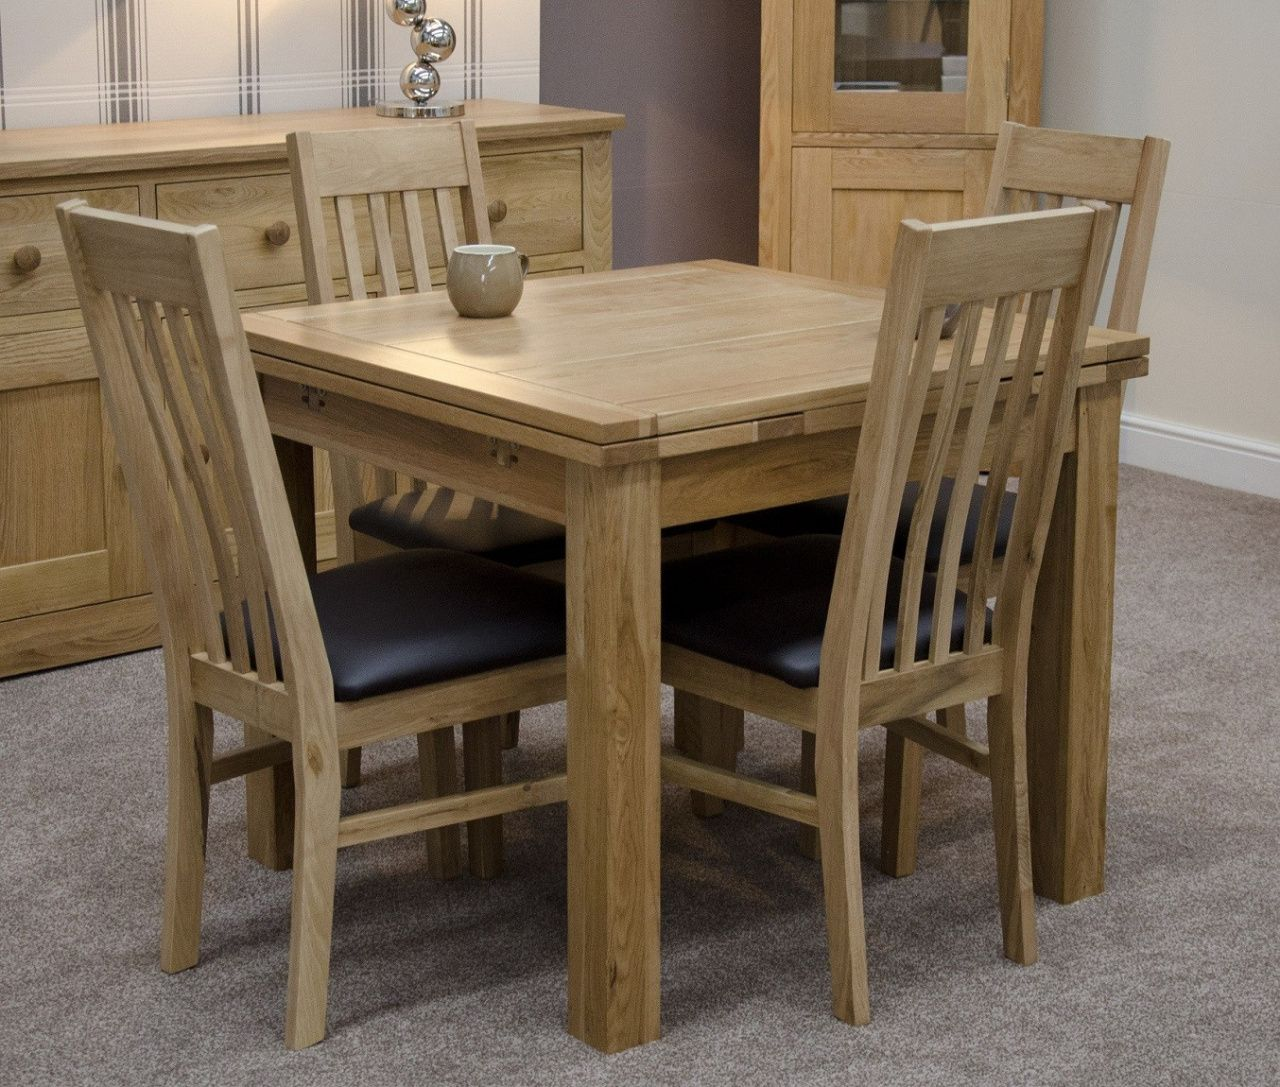 bea2baeabf Small Extendable Dining Table - Office Furniture for Home Check more at  http://